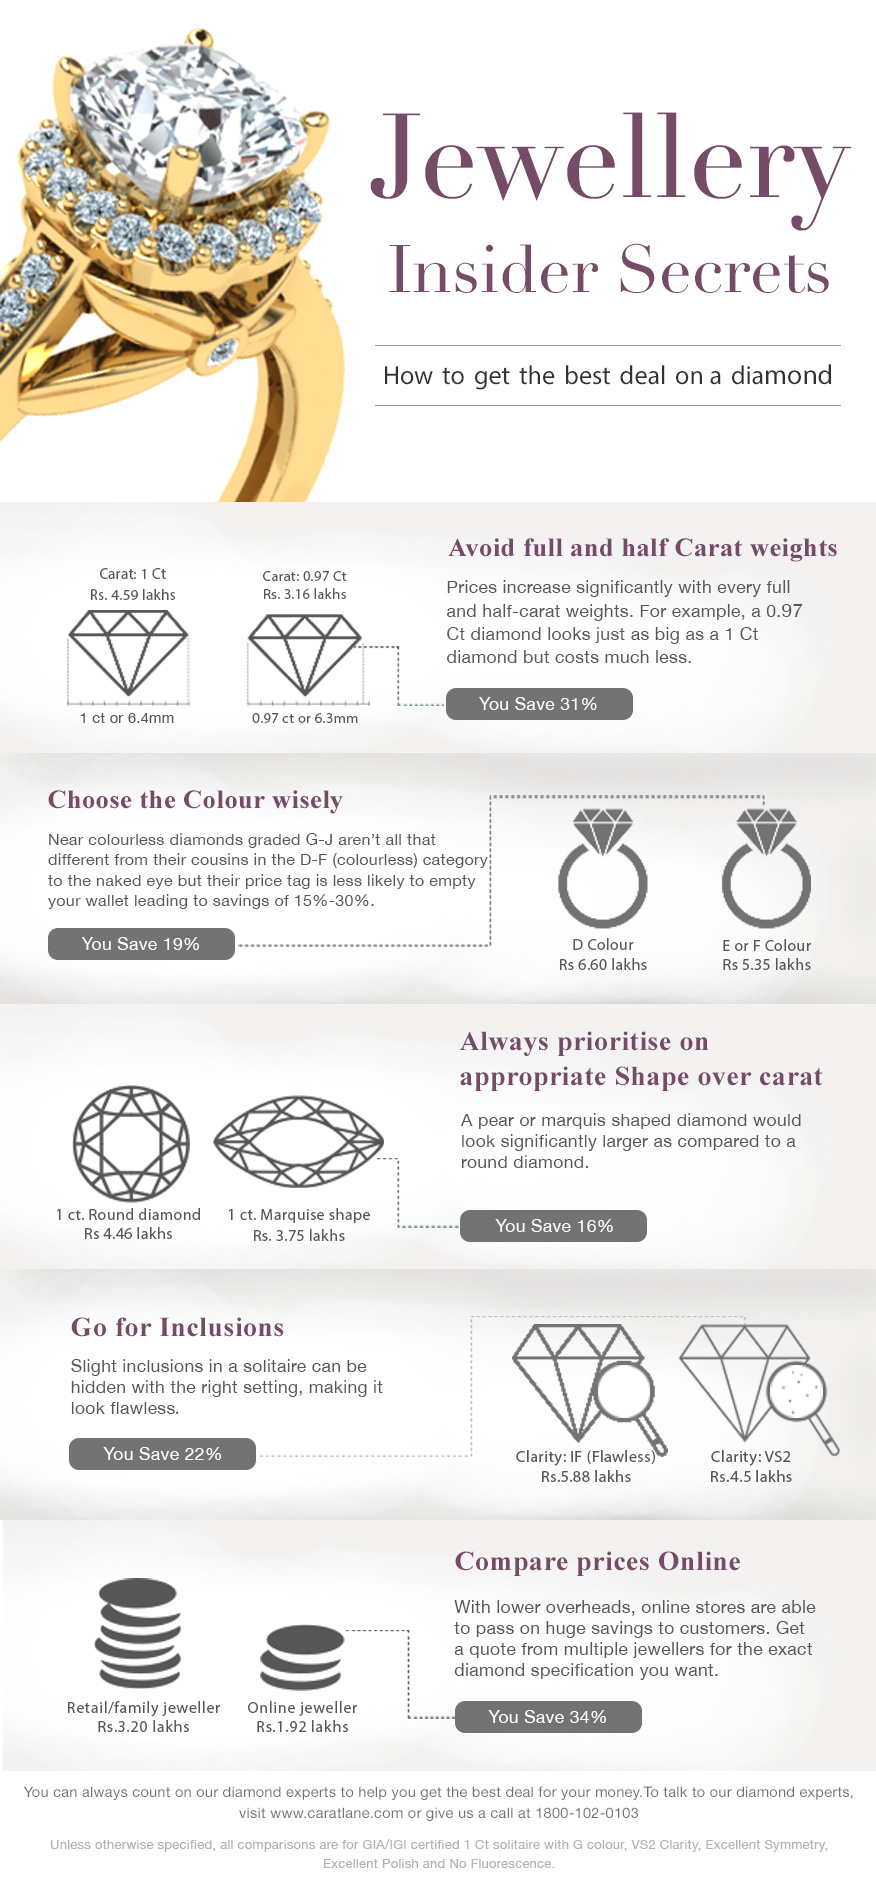 Jewellery Insider Secrets: How to get the best deal on a diamond